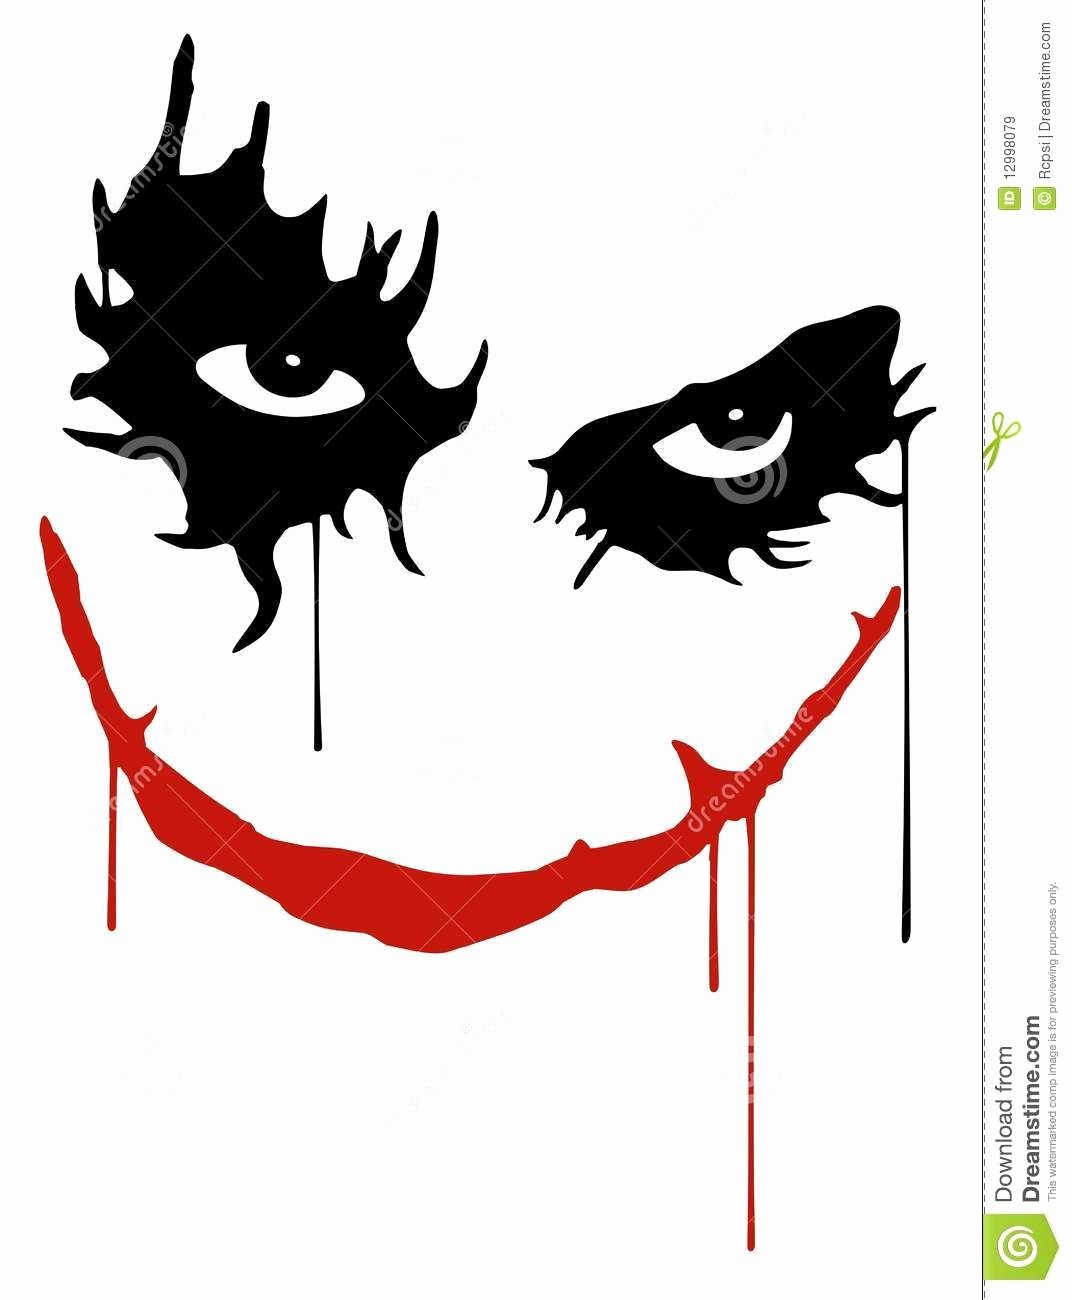 Joker Pumpkin Carving Stencils Awesome for Joker Card Pumpkin Stencil